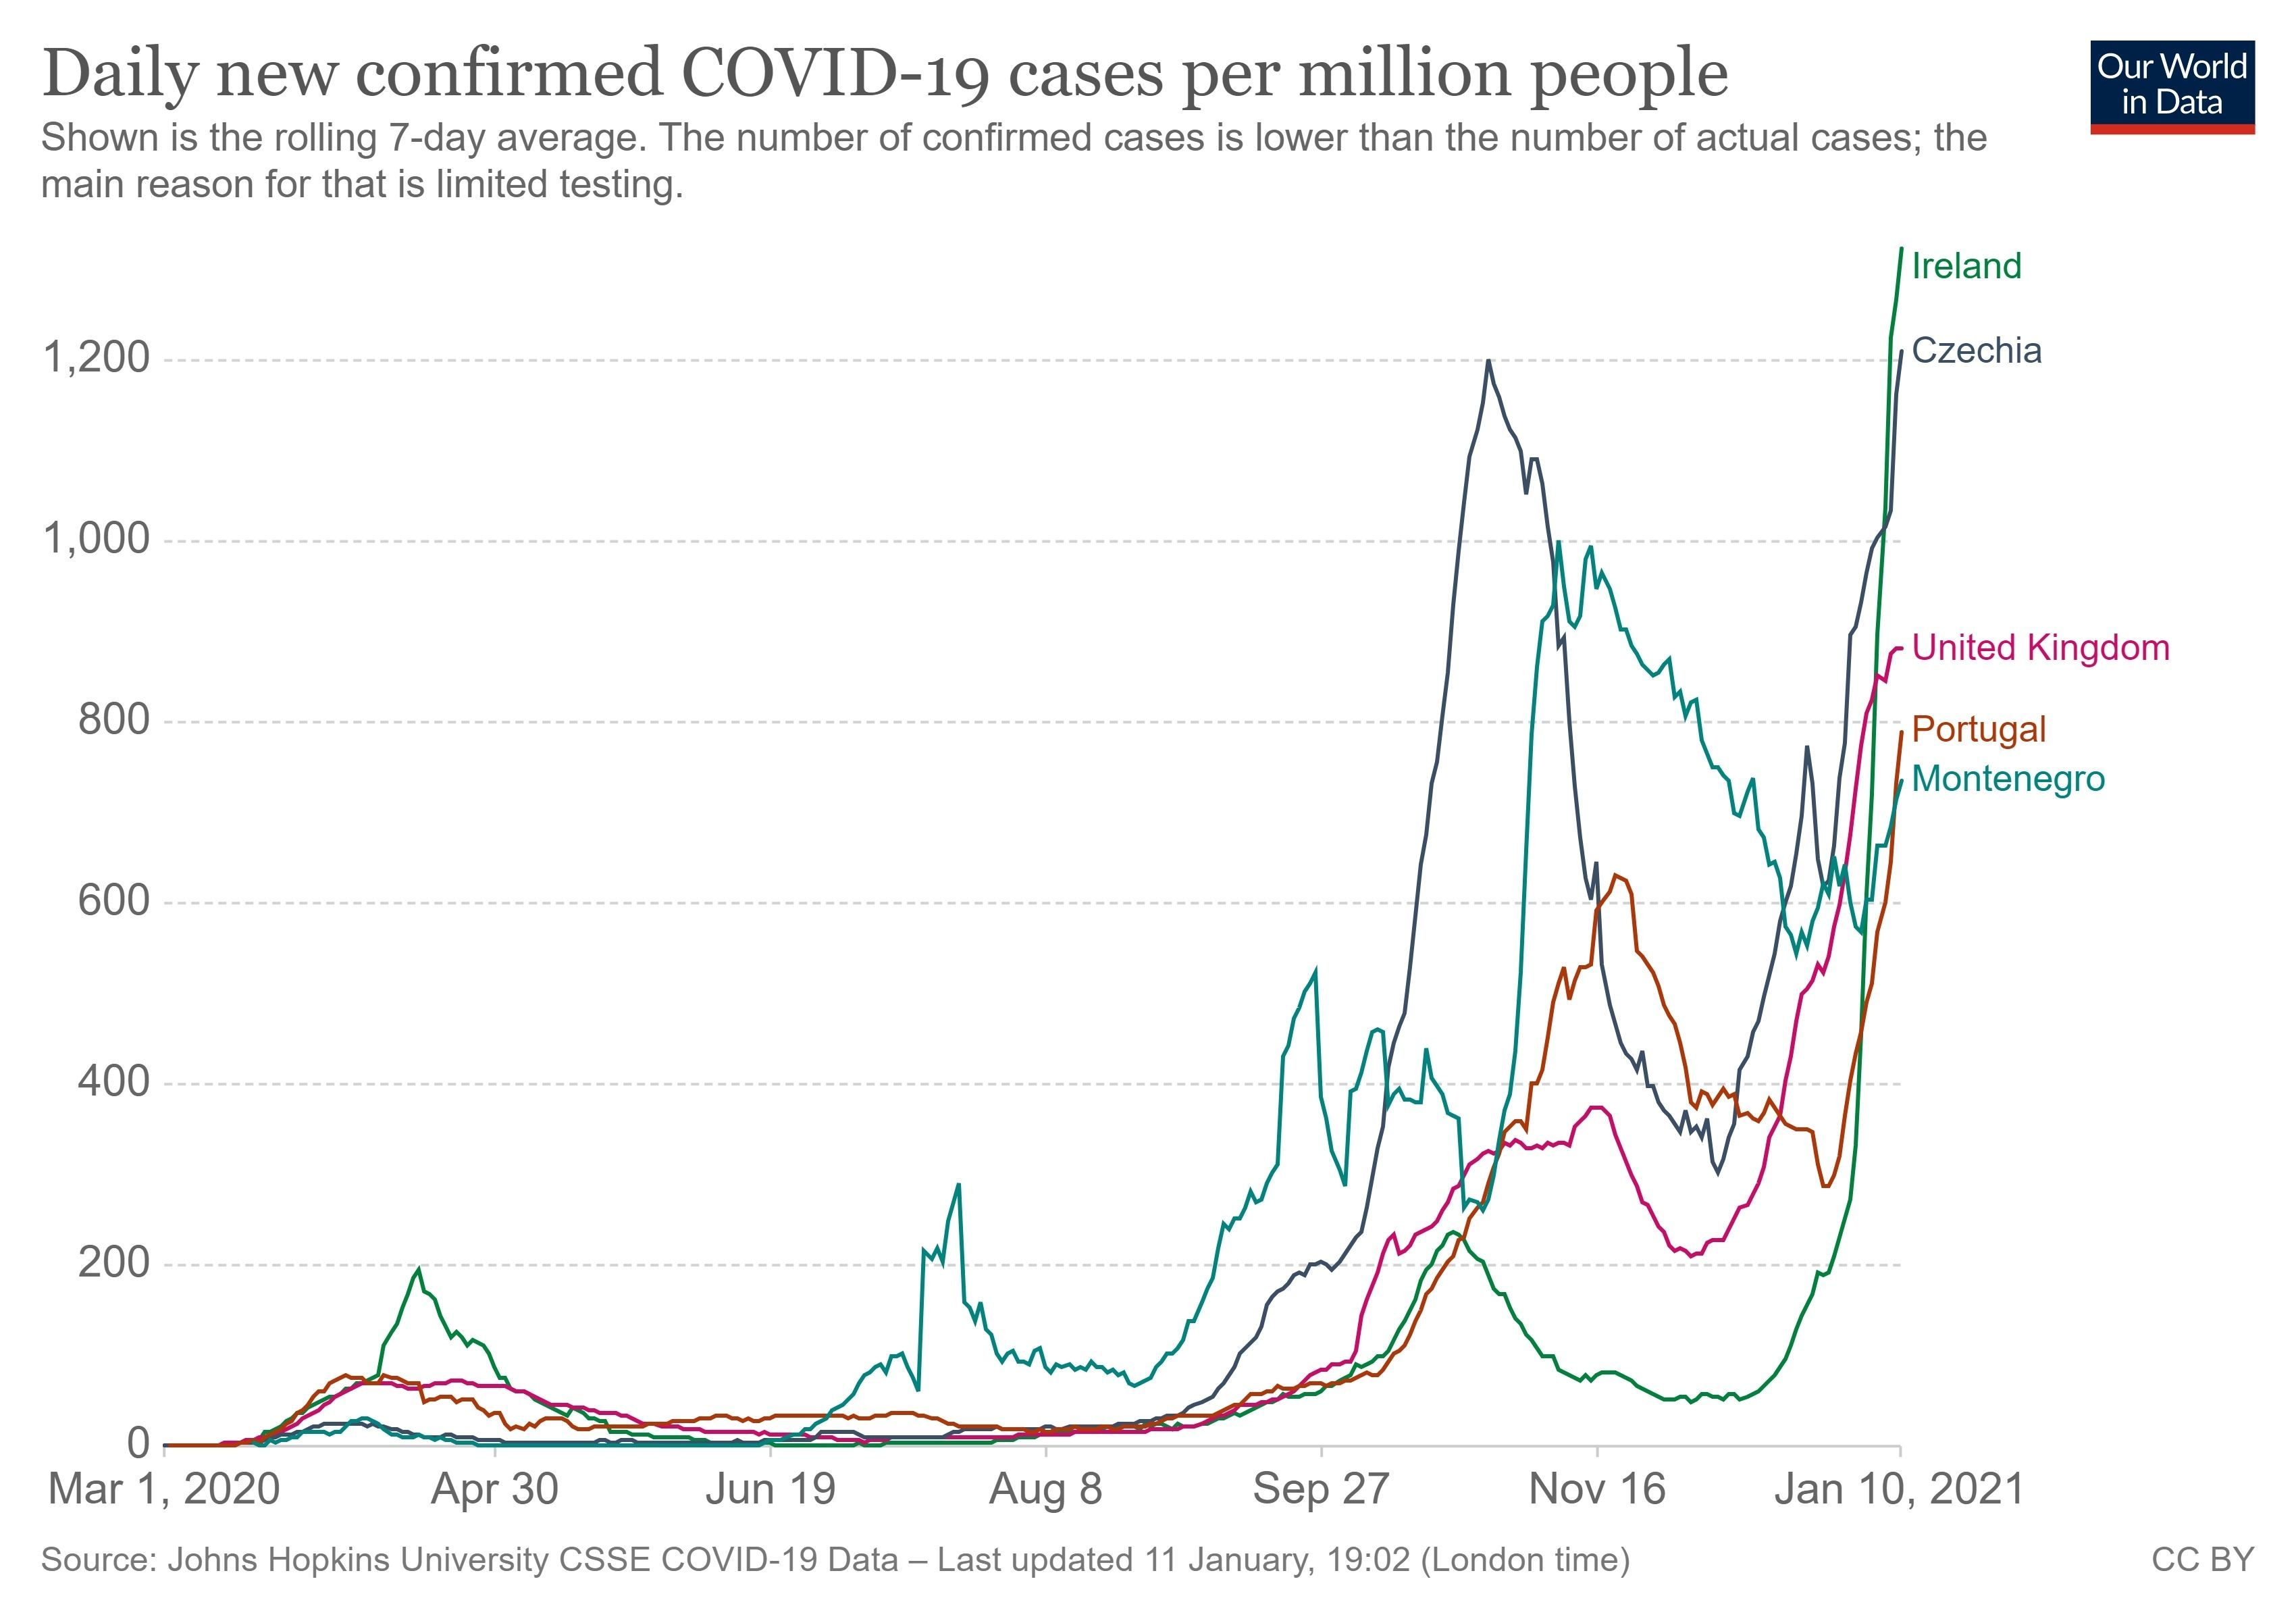 Daily new confirmed COVID-19 cases per million people as of January 11. (Our World in Data)